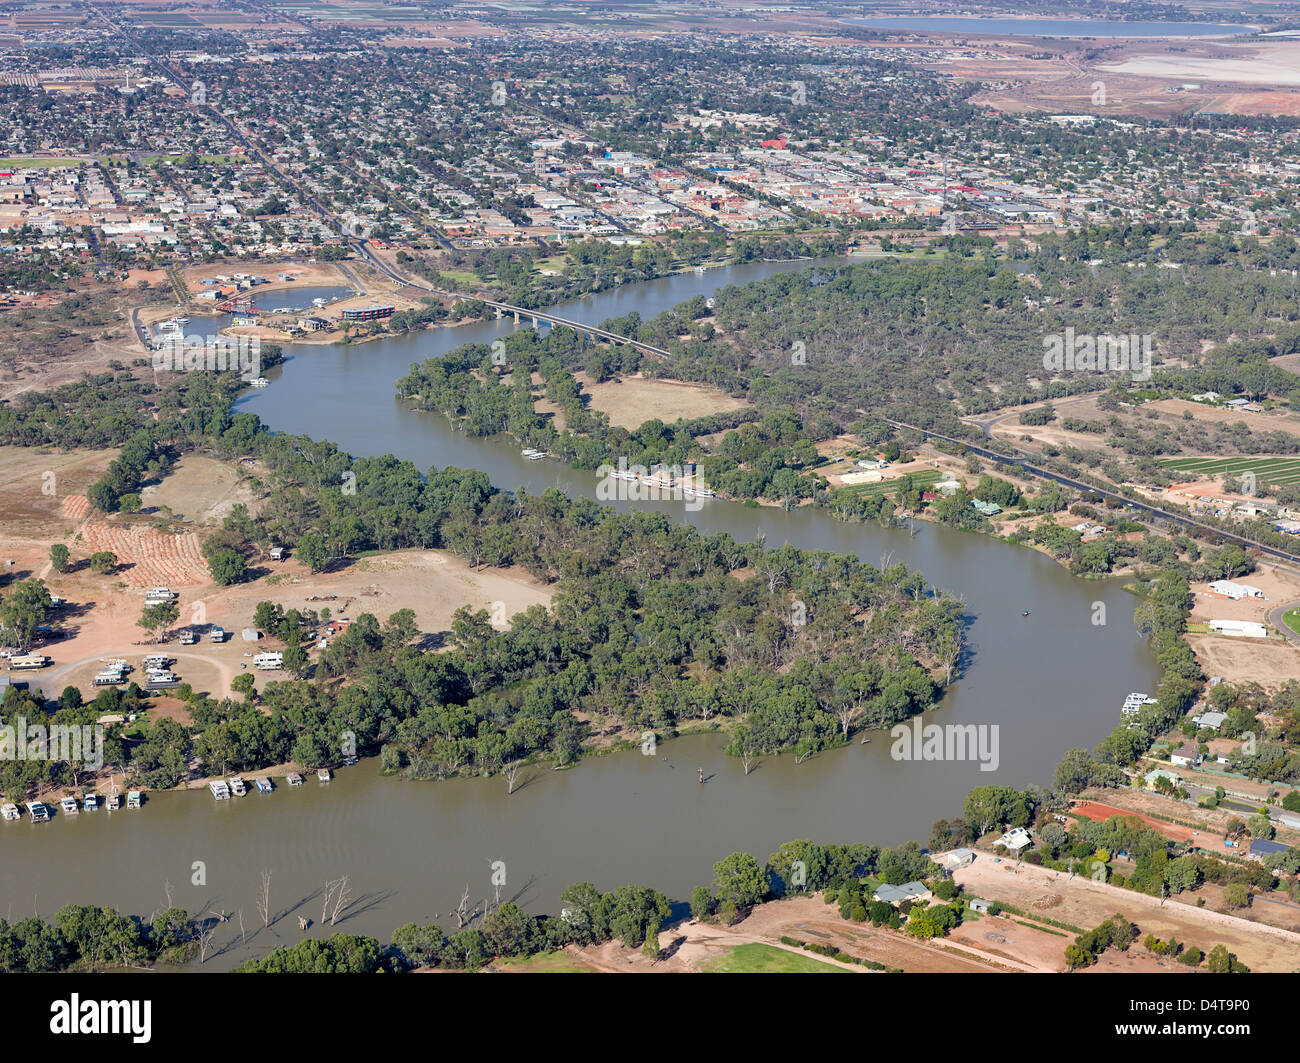 Aerial image of the Murray River passing the small rural Victorian City of Mildura, Australia - Stock Image